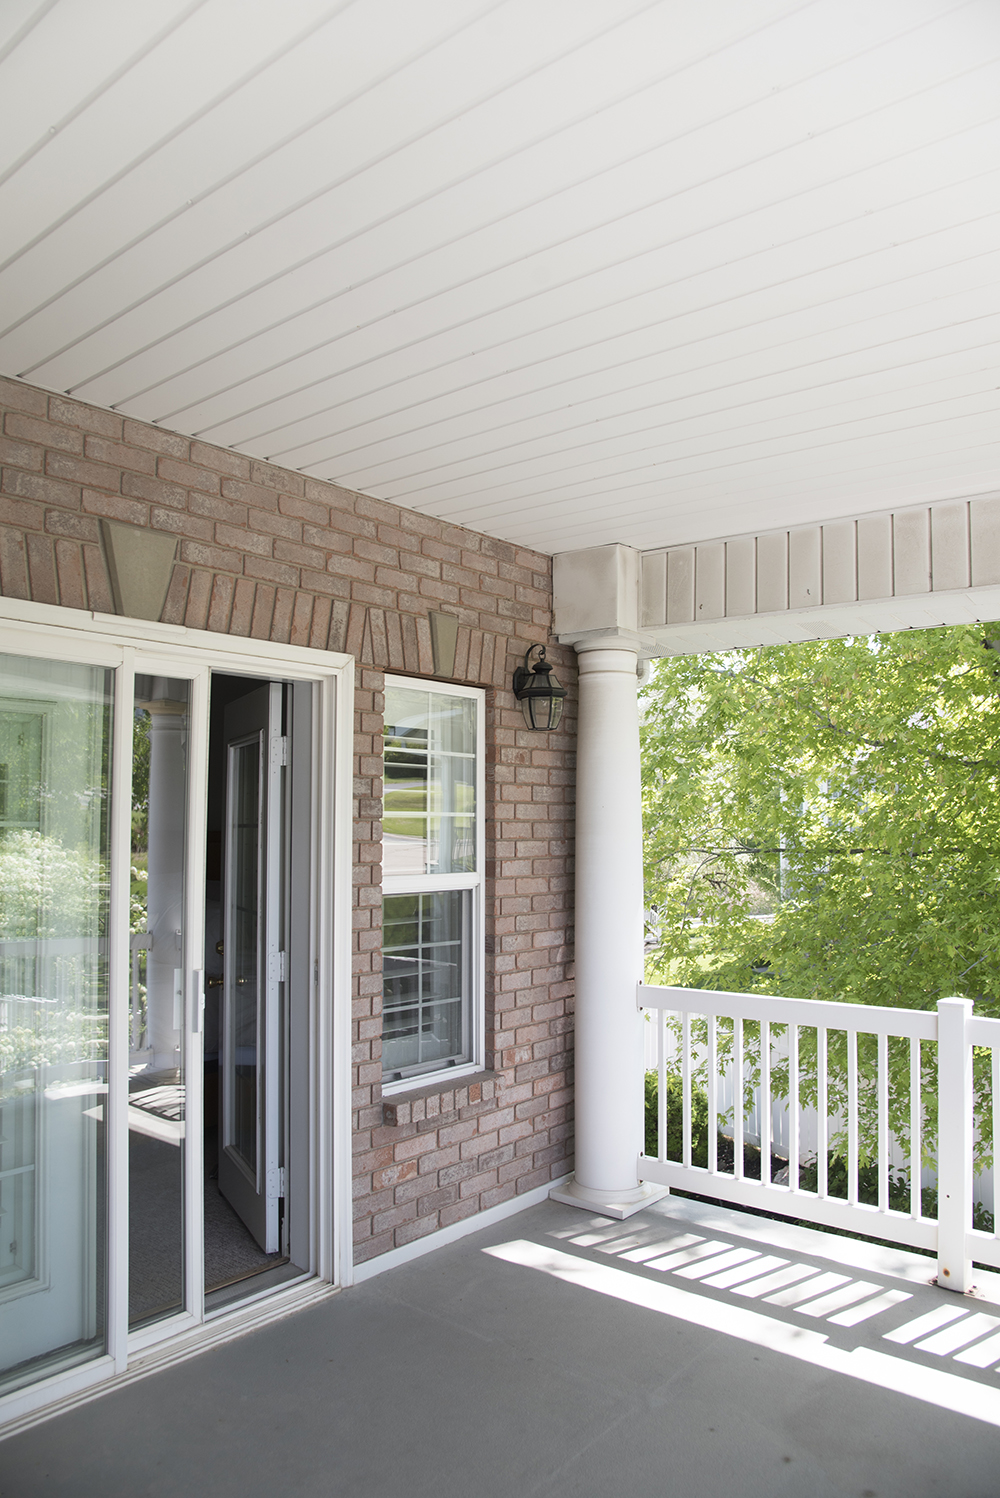 The Bedroom Balcony Plan (+ Before Images) - roomfortuesday.com